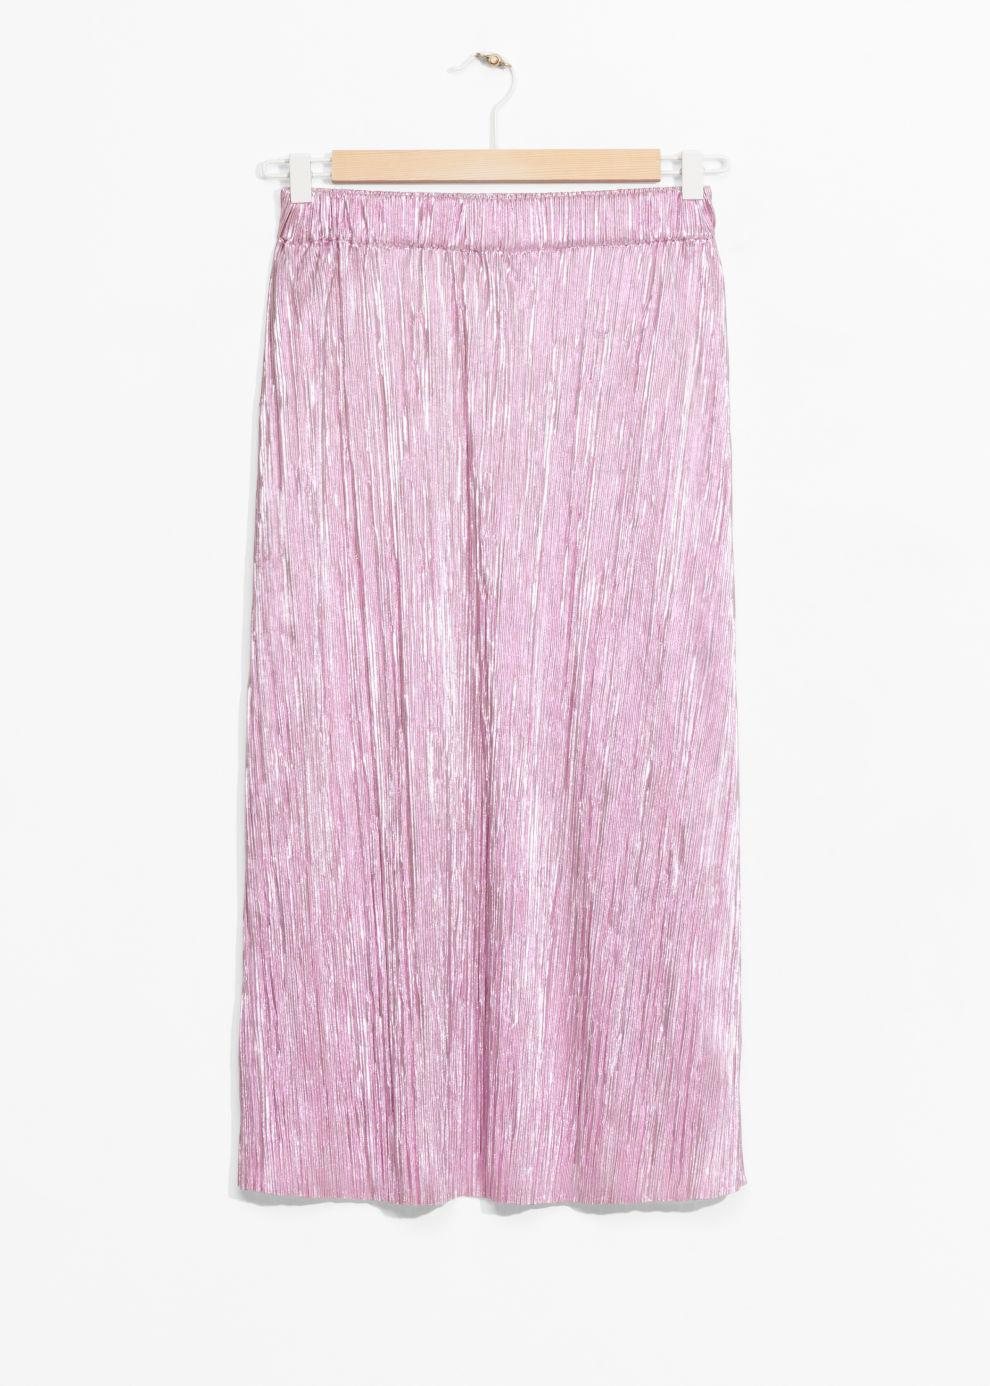 502aba654b Gallery. Previously sold at: & Other Stories · Women's Metallic Skirts